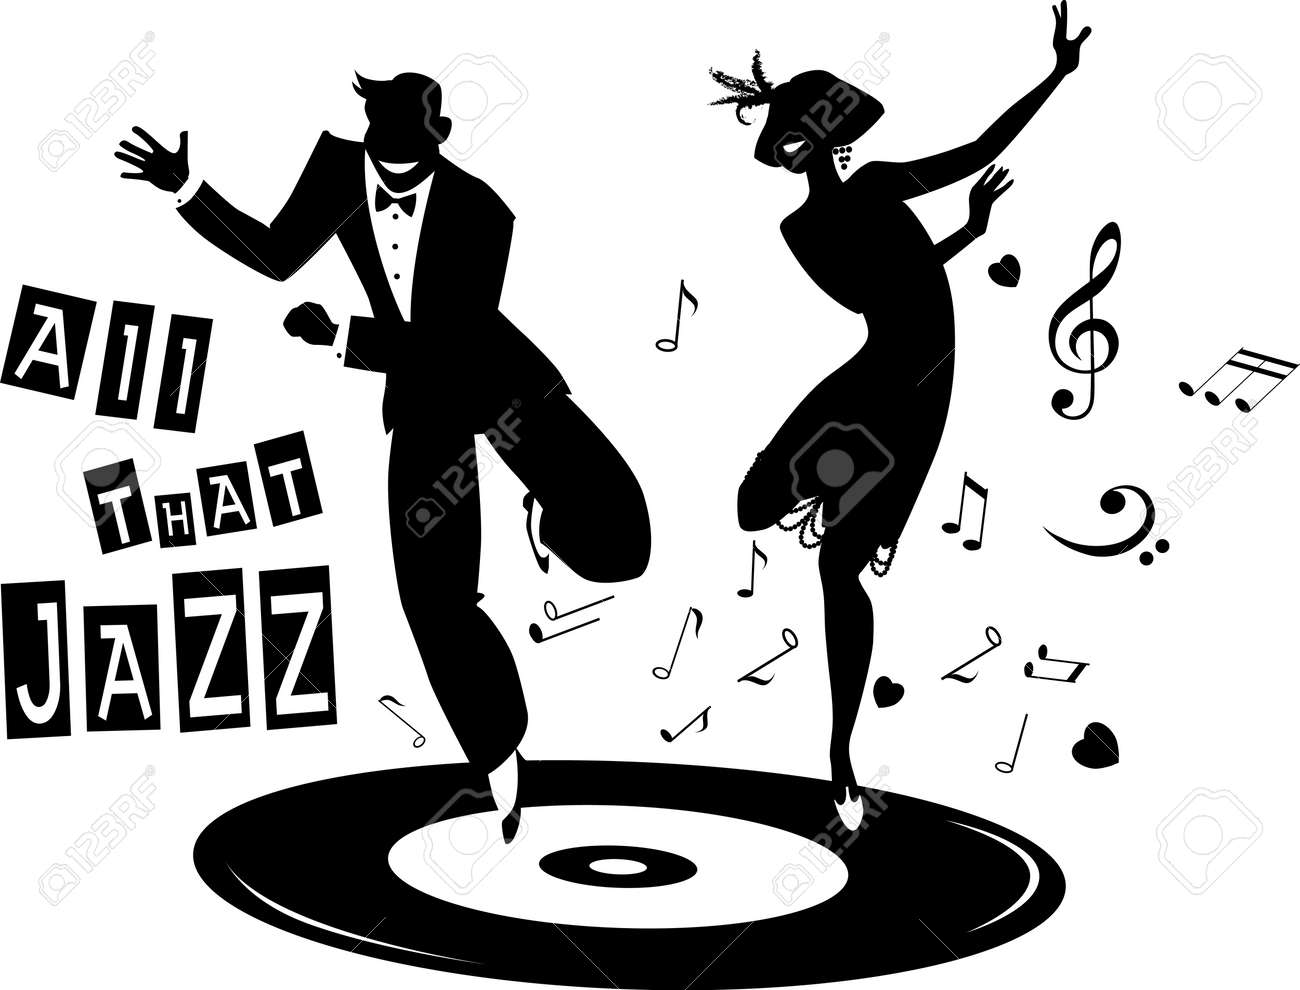 Black vector silhouette of a couple dressed in 1920s fashion dancing the Charleston on a record, no white objects - 51267497